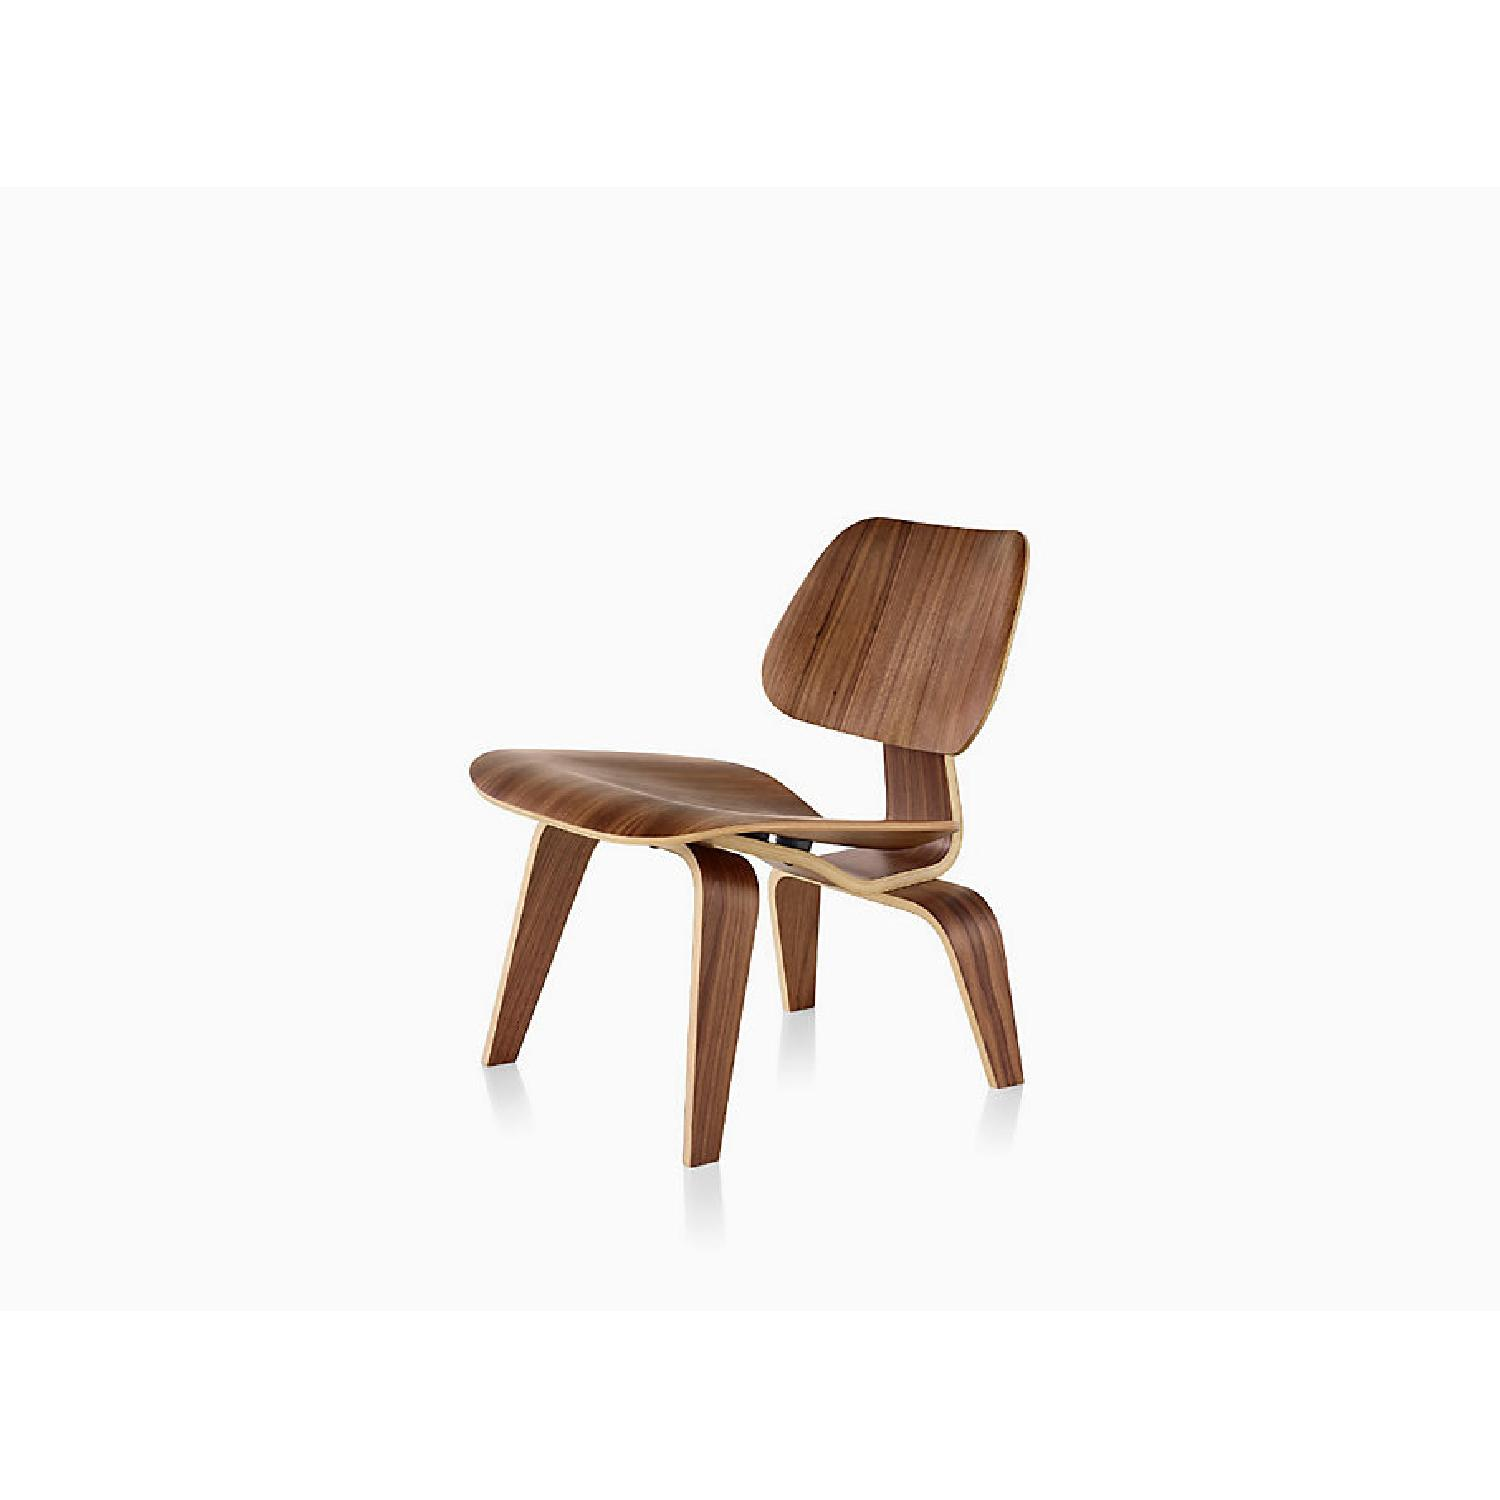 Herman Miller Eames LCW Walnut Chair - image-0